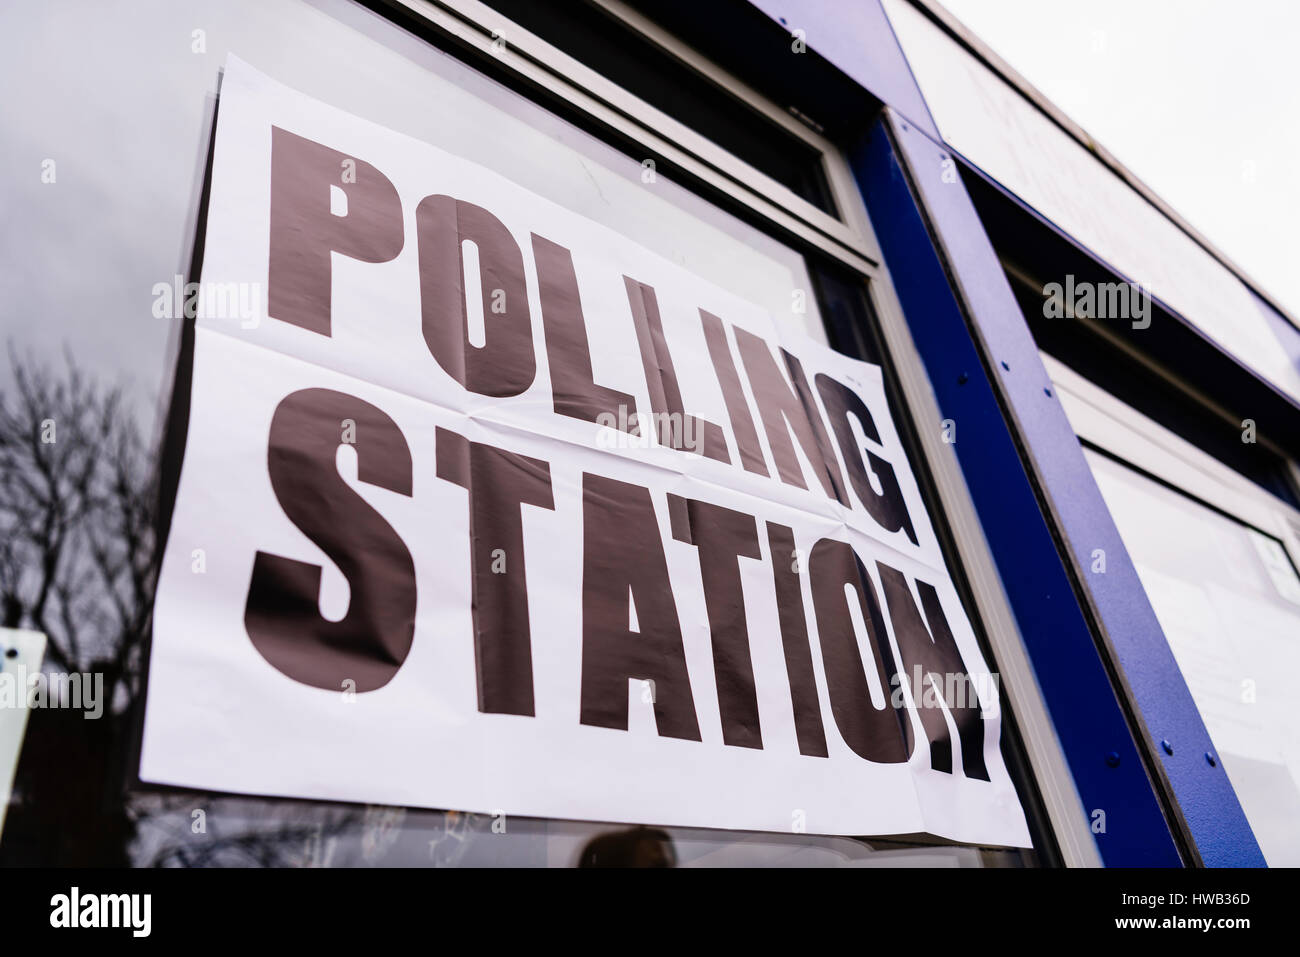 Polling Station - Stock Image